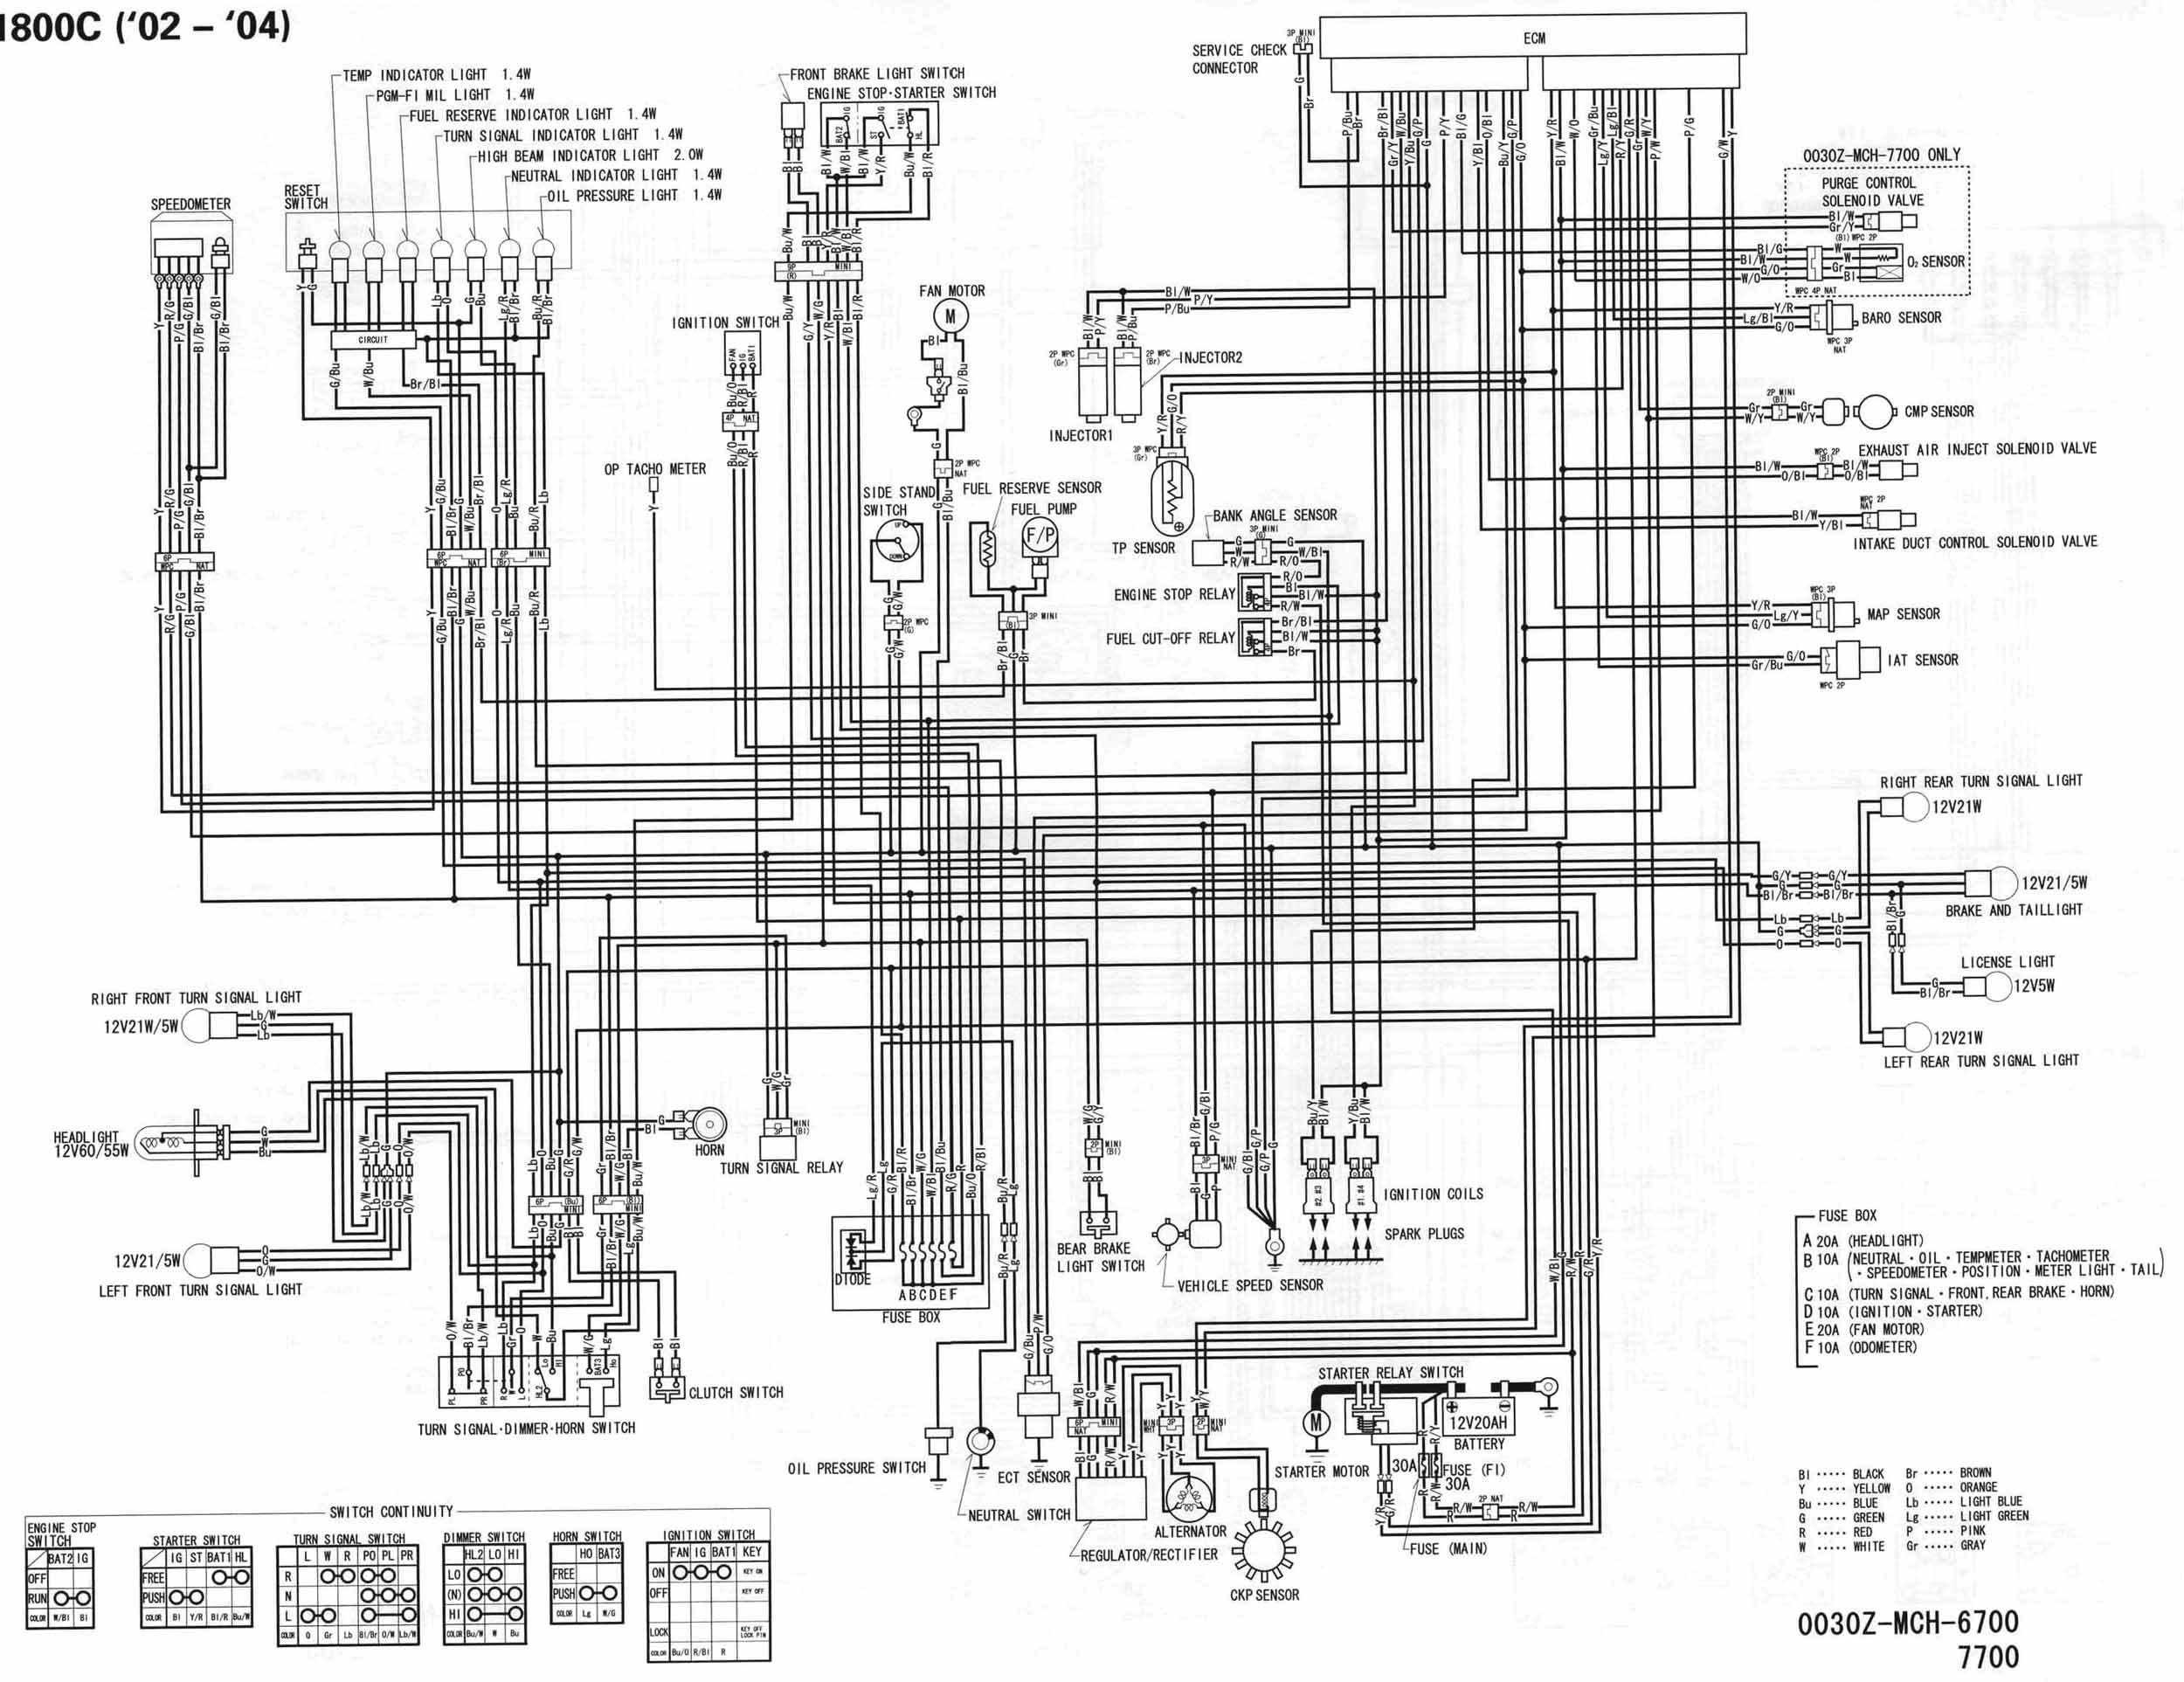 7 Pin Cdi Wiring Diagram furthermore Honda Nq50 Wiring Diagram as well Husqvarna Wiring Harness further Kawasaki Kx 100 Wiring Diagram in addition Honda 500 Foreman Engine Diagram. on kawasaki motorcycle wiring diagrams